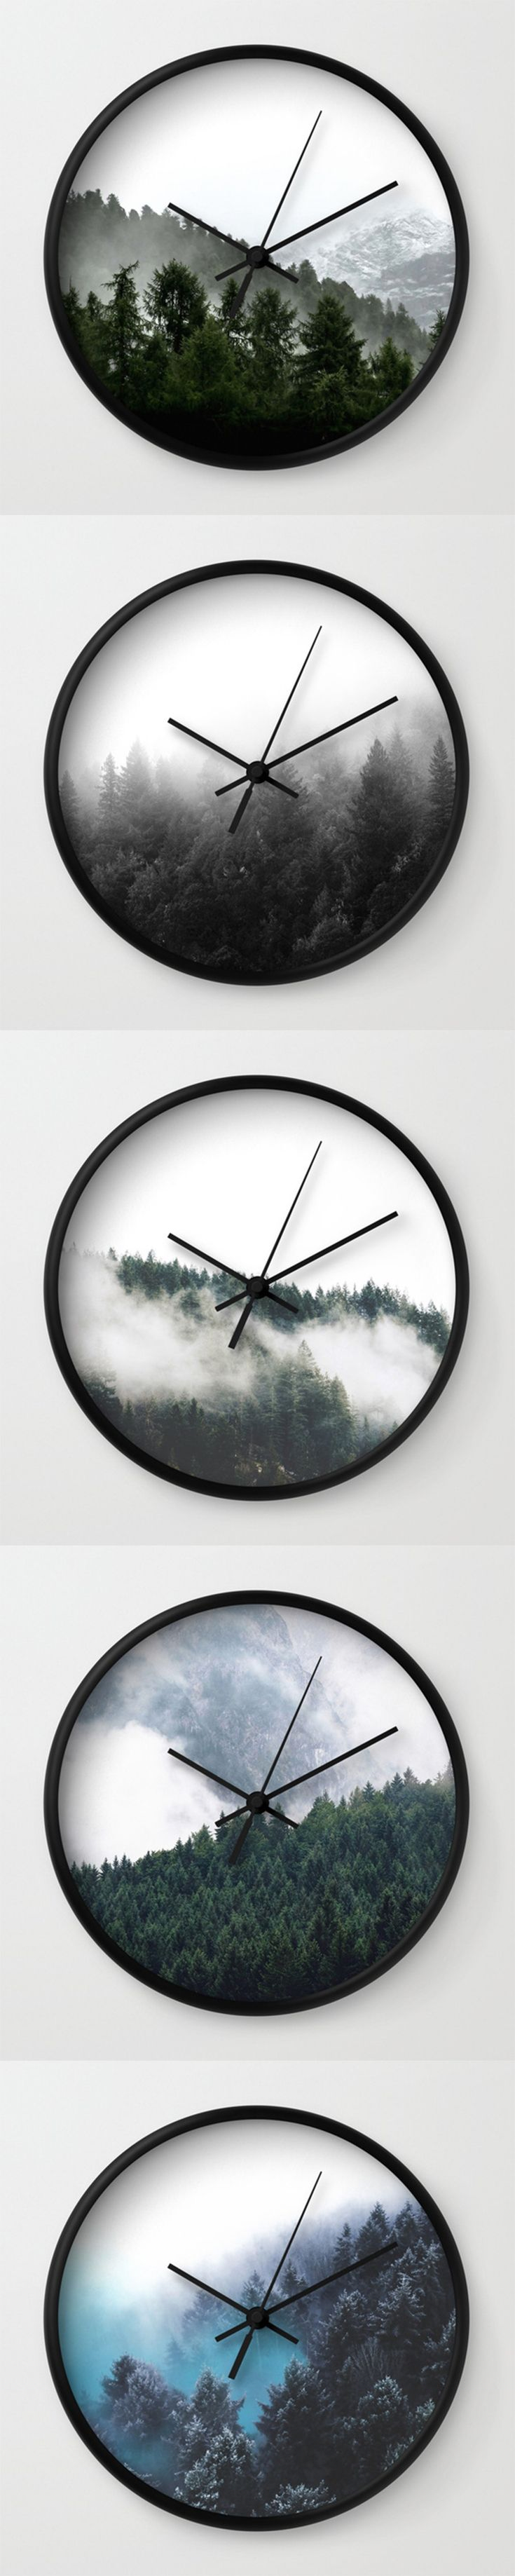 best  minimalist wall clocks ideas on pinterest  designer  - modern forest wall clocks by neptune essentials on society home decor walldecor wall clocks hanging clocks minimalist clocks modern designs